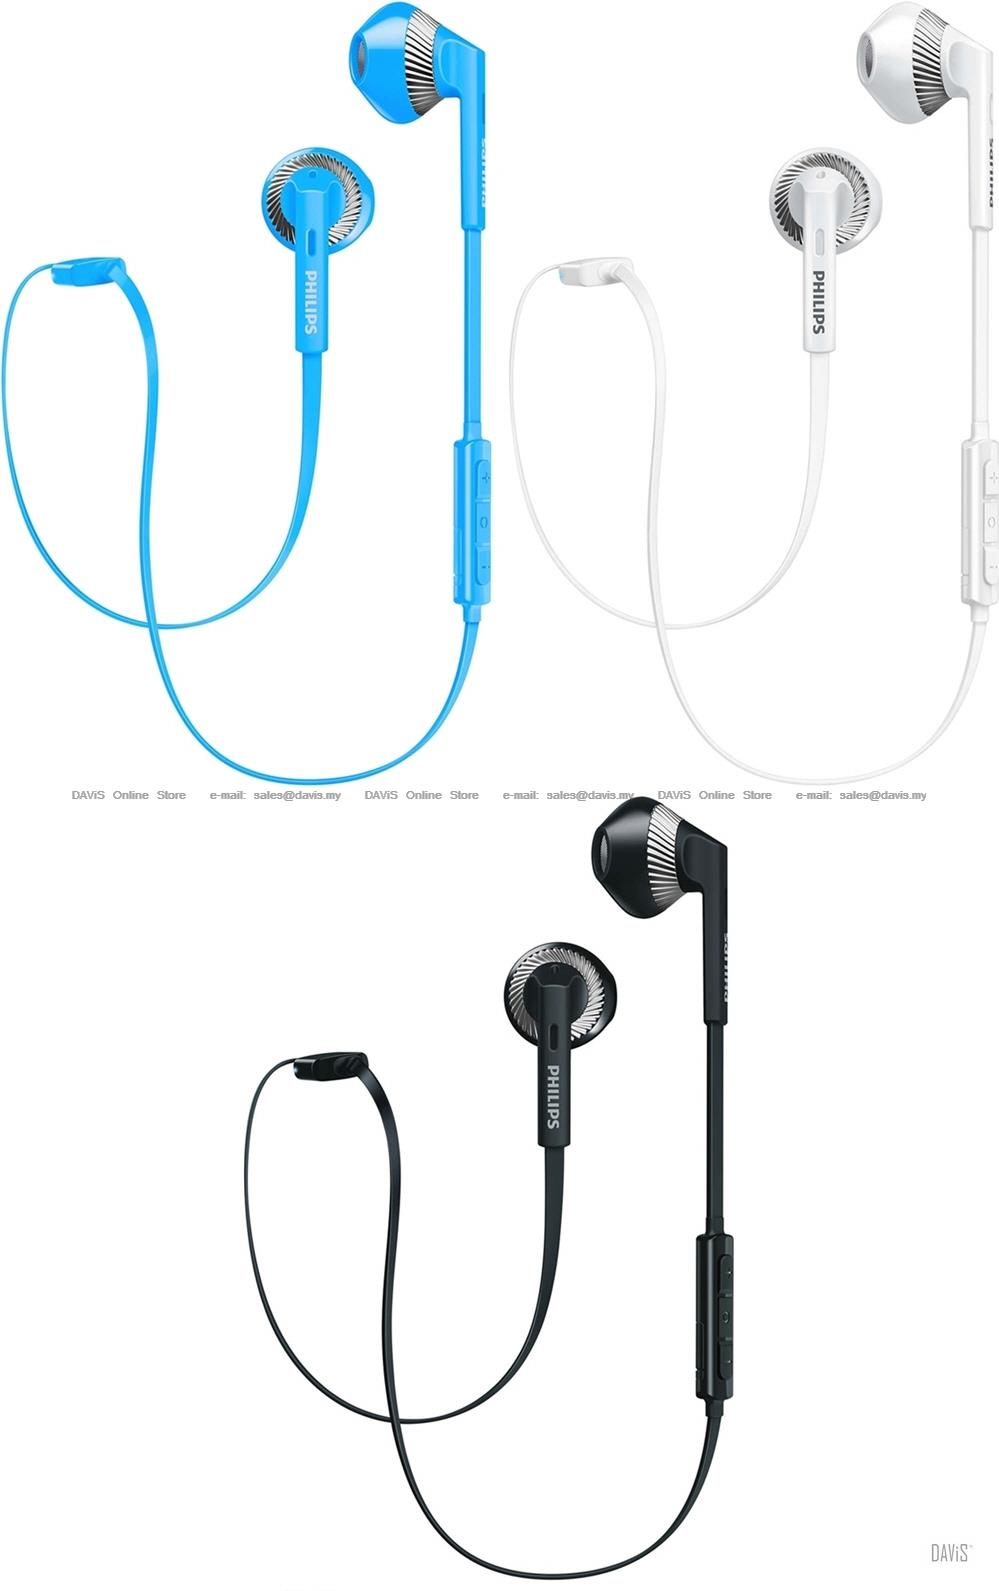 dda77322663 Philips SHB5250 . Bluetooth Headsets (end 10/9/2020 3:59 PM)